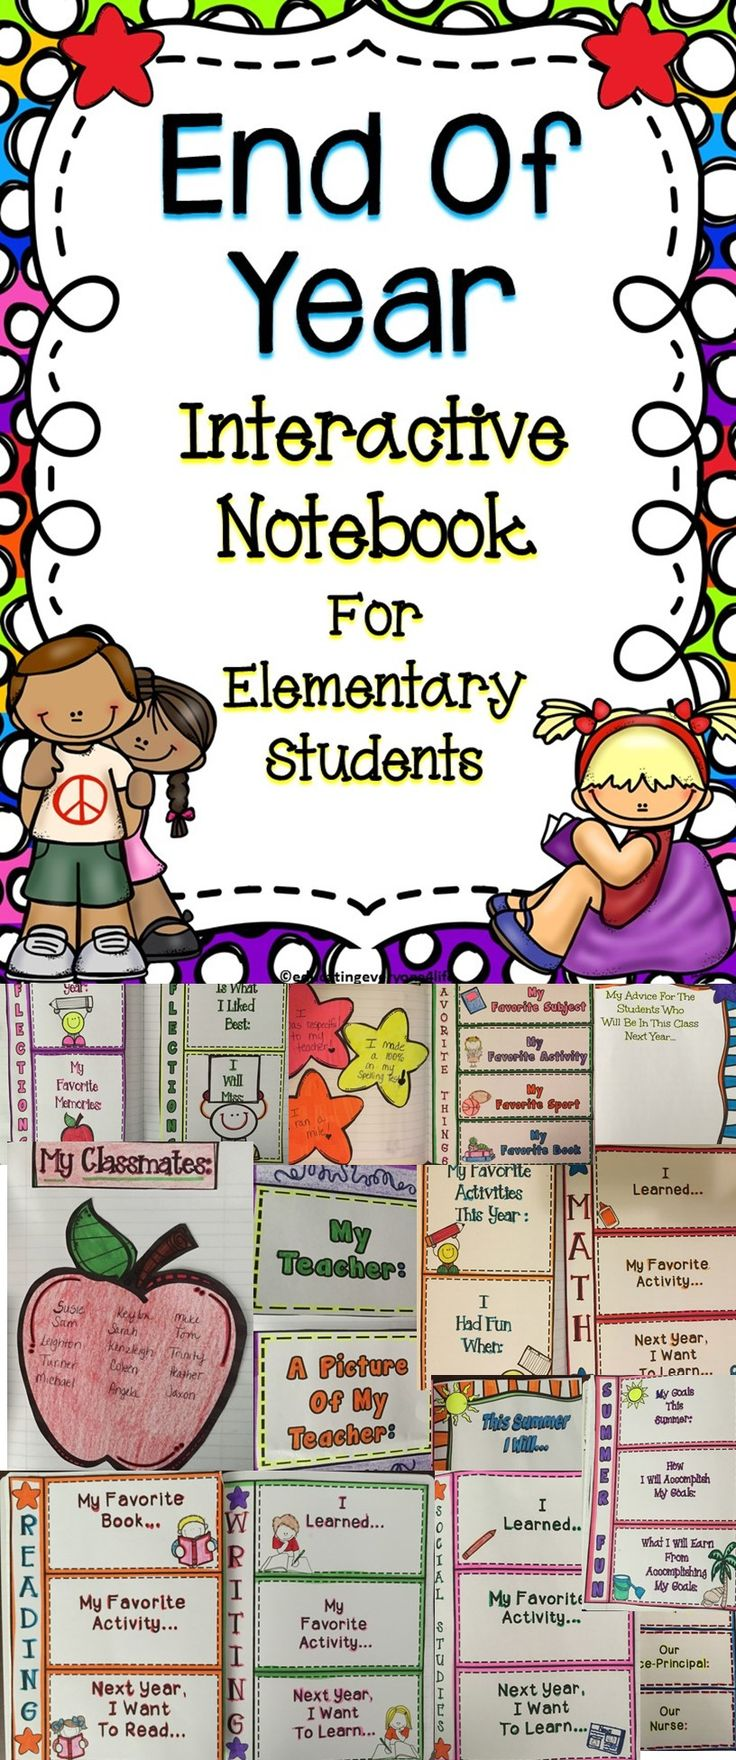 End Of Year Interactive Notebook Activities For Students - This is a great collection of activities to celebrate the end of the school year! #ideas